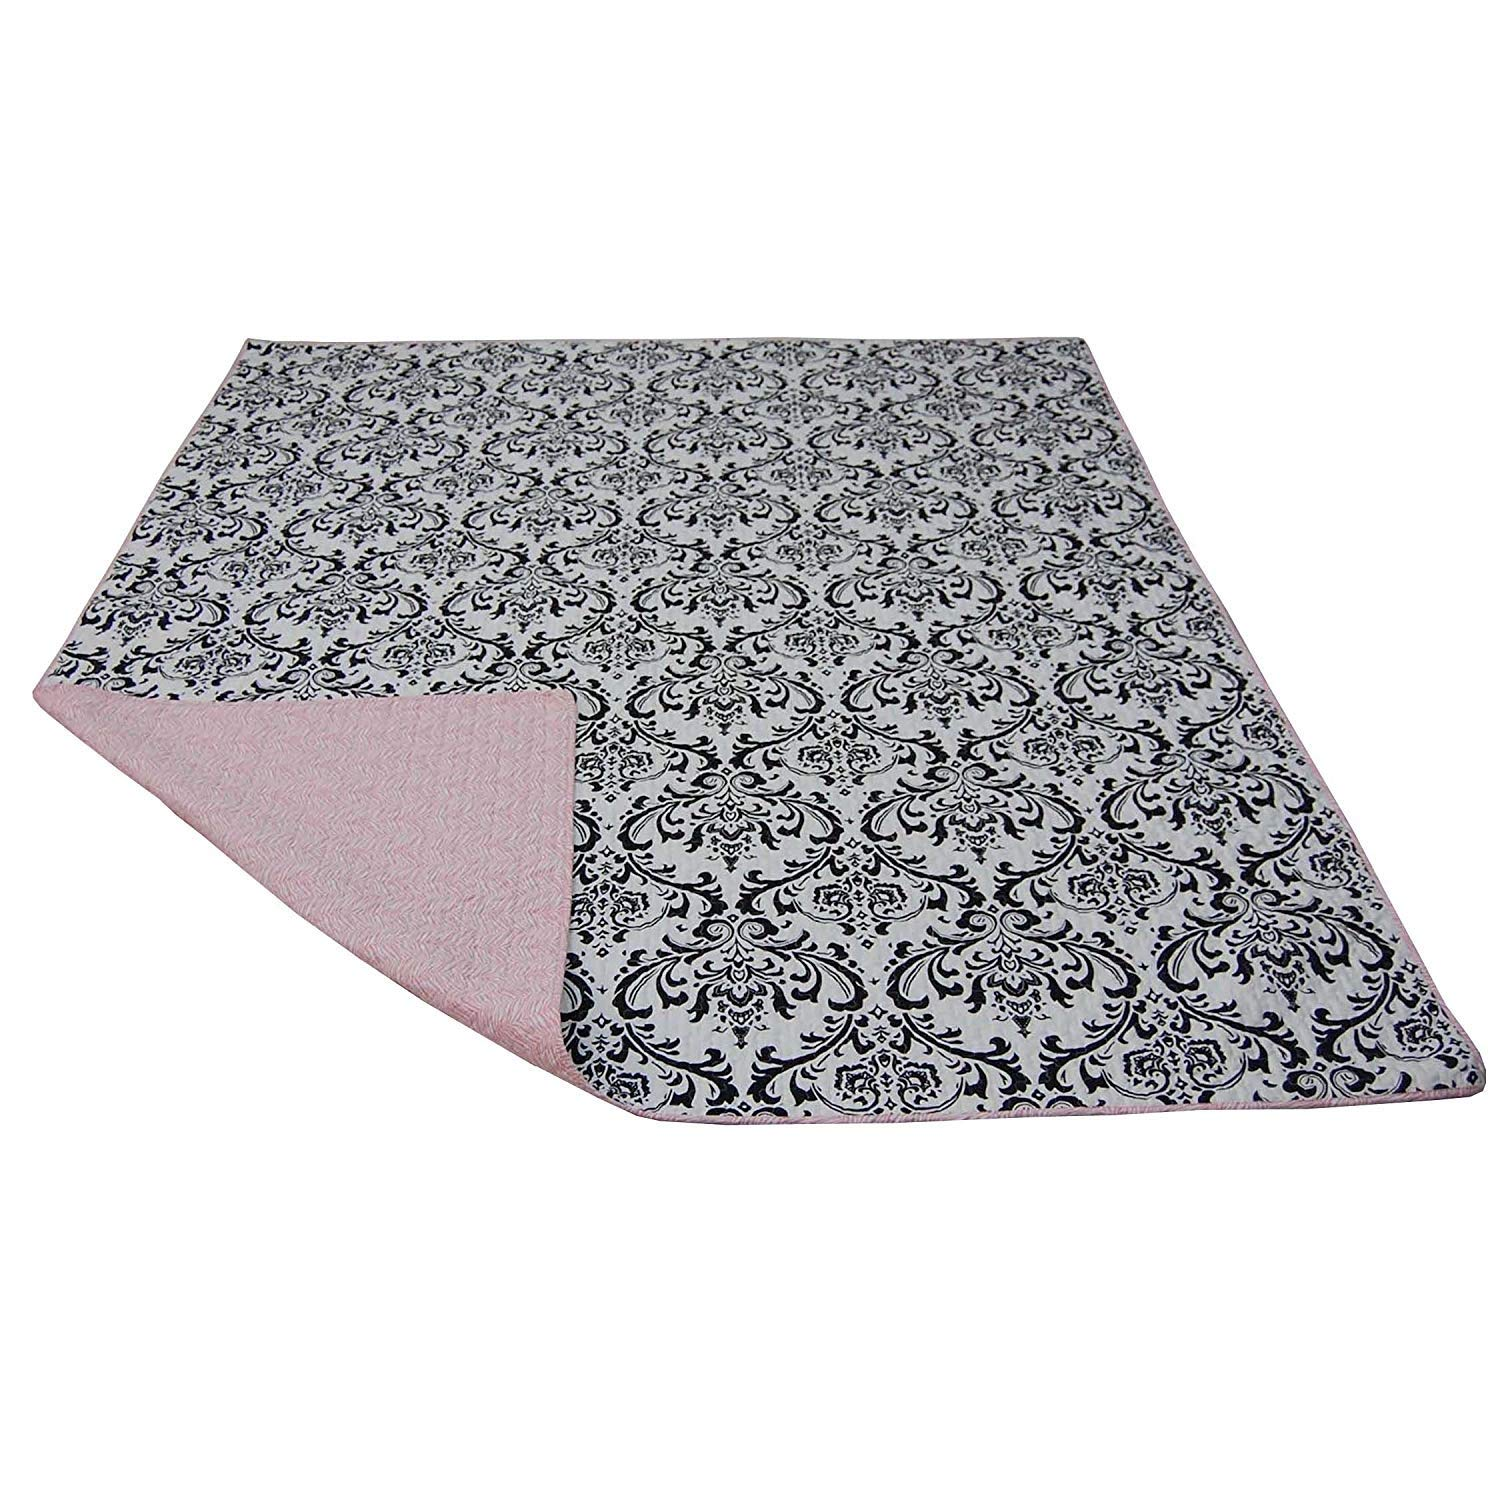 Cotton Tale Designs 100% Cotton Black and White Floral Damask with Pink Zebra Stripes Safari Jungle Animal Print Reversible Quilt - Girl (Full/Queen)